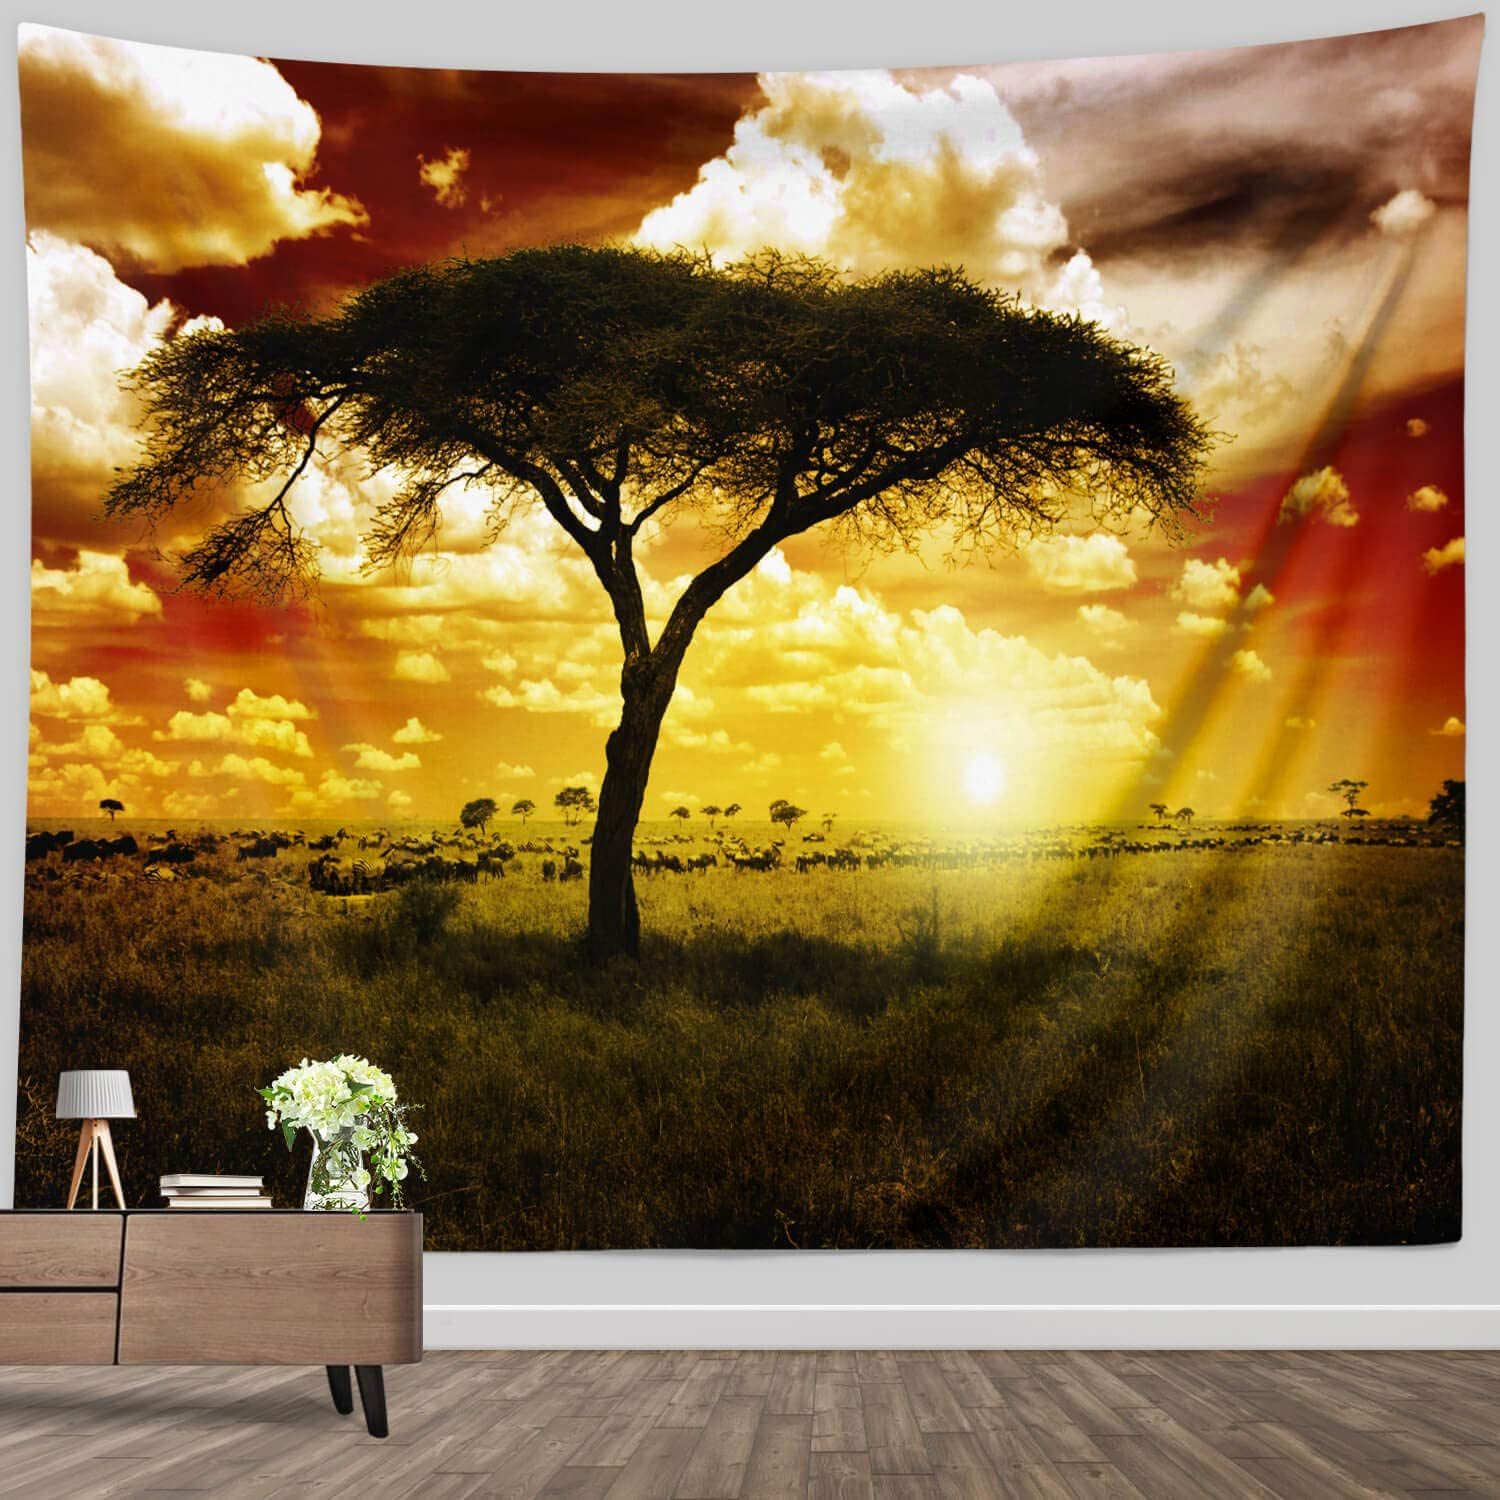 Scene Wall Tapestry Large, African Tree Wildlife Animal on Sunset Landscape Tapestry Dramatic Wall Hanging for Home Bedroom Living room Wall Decor Fabric Blanket